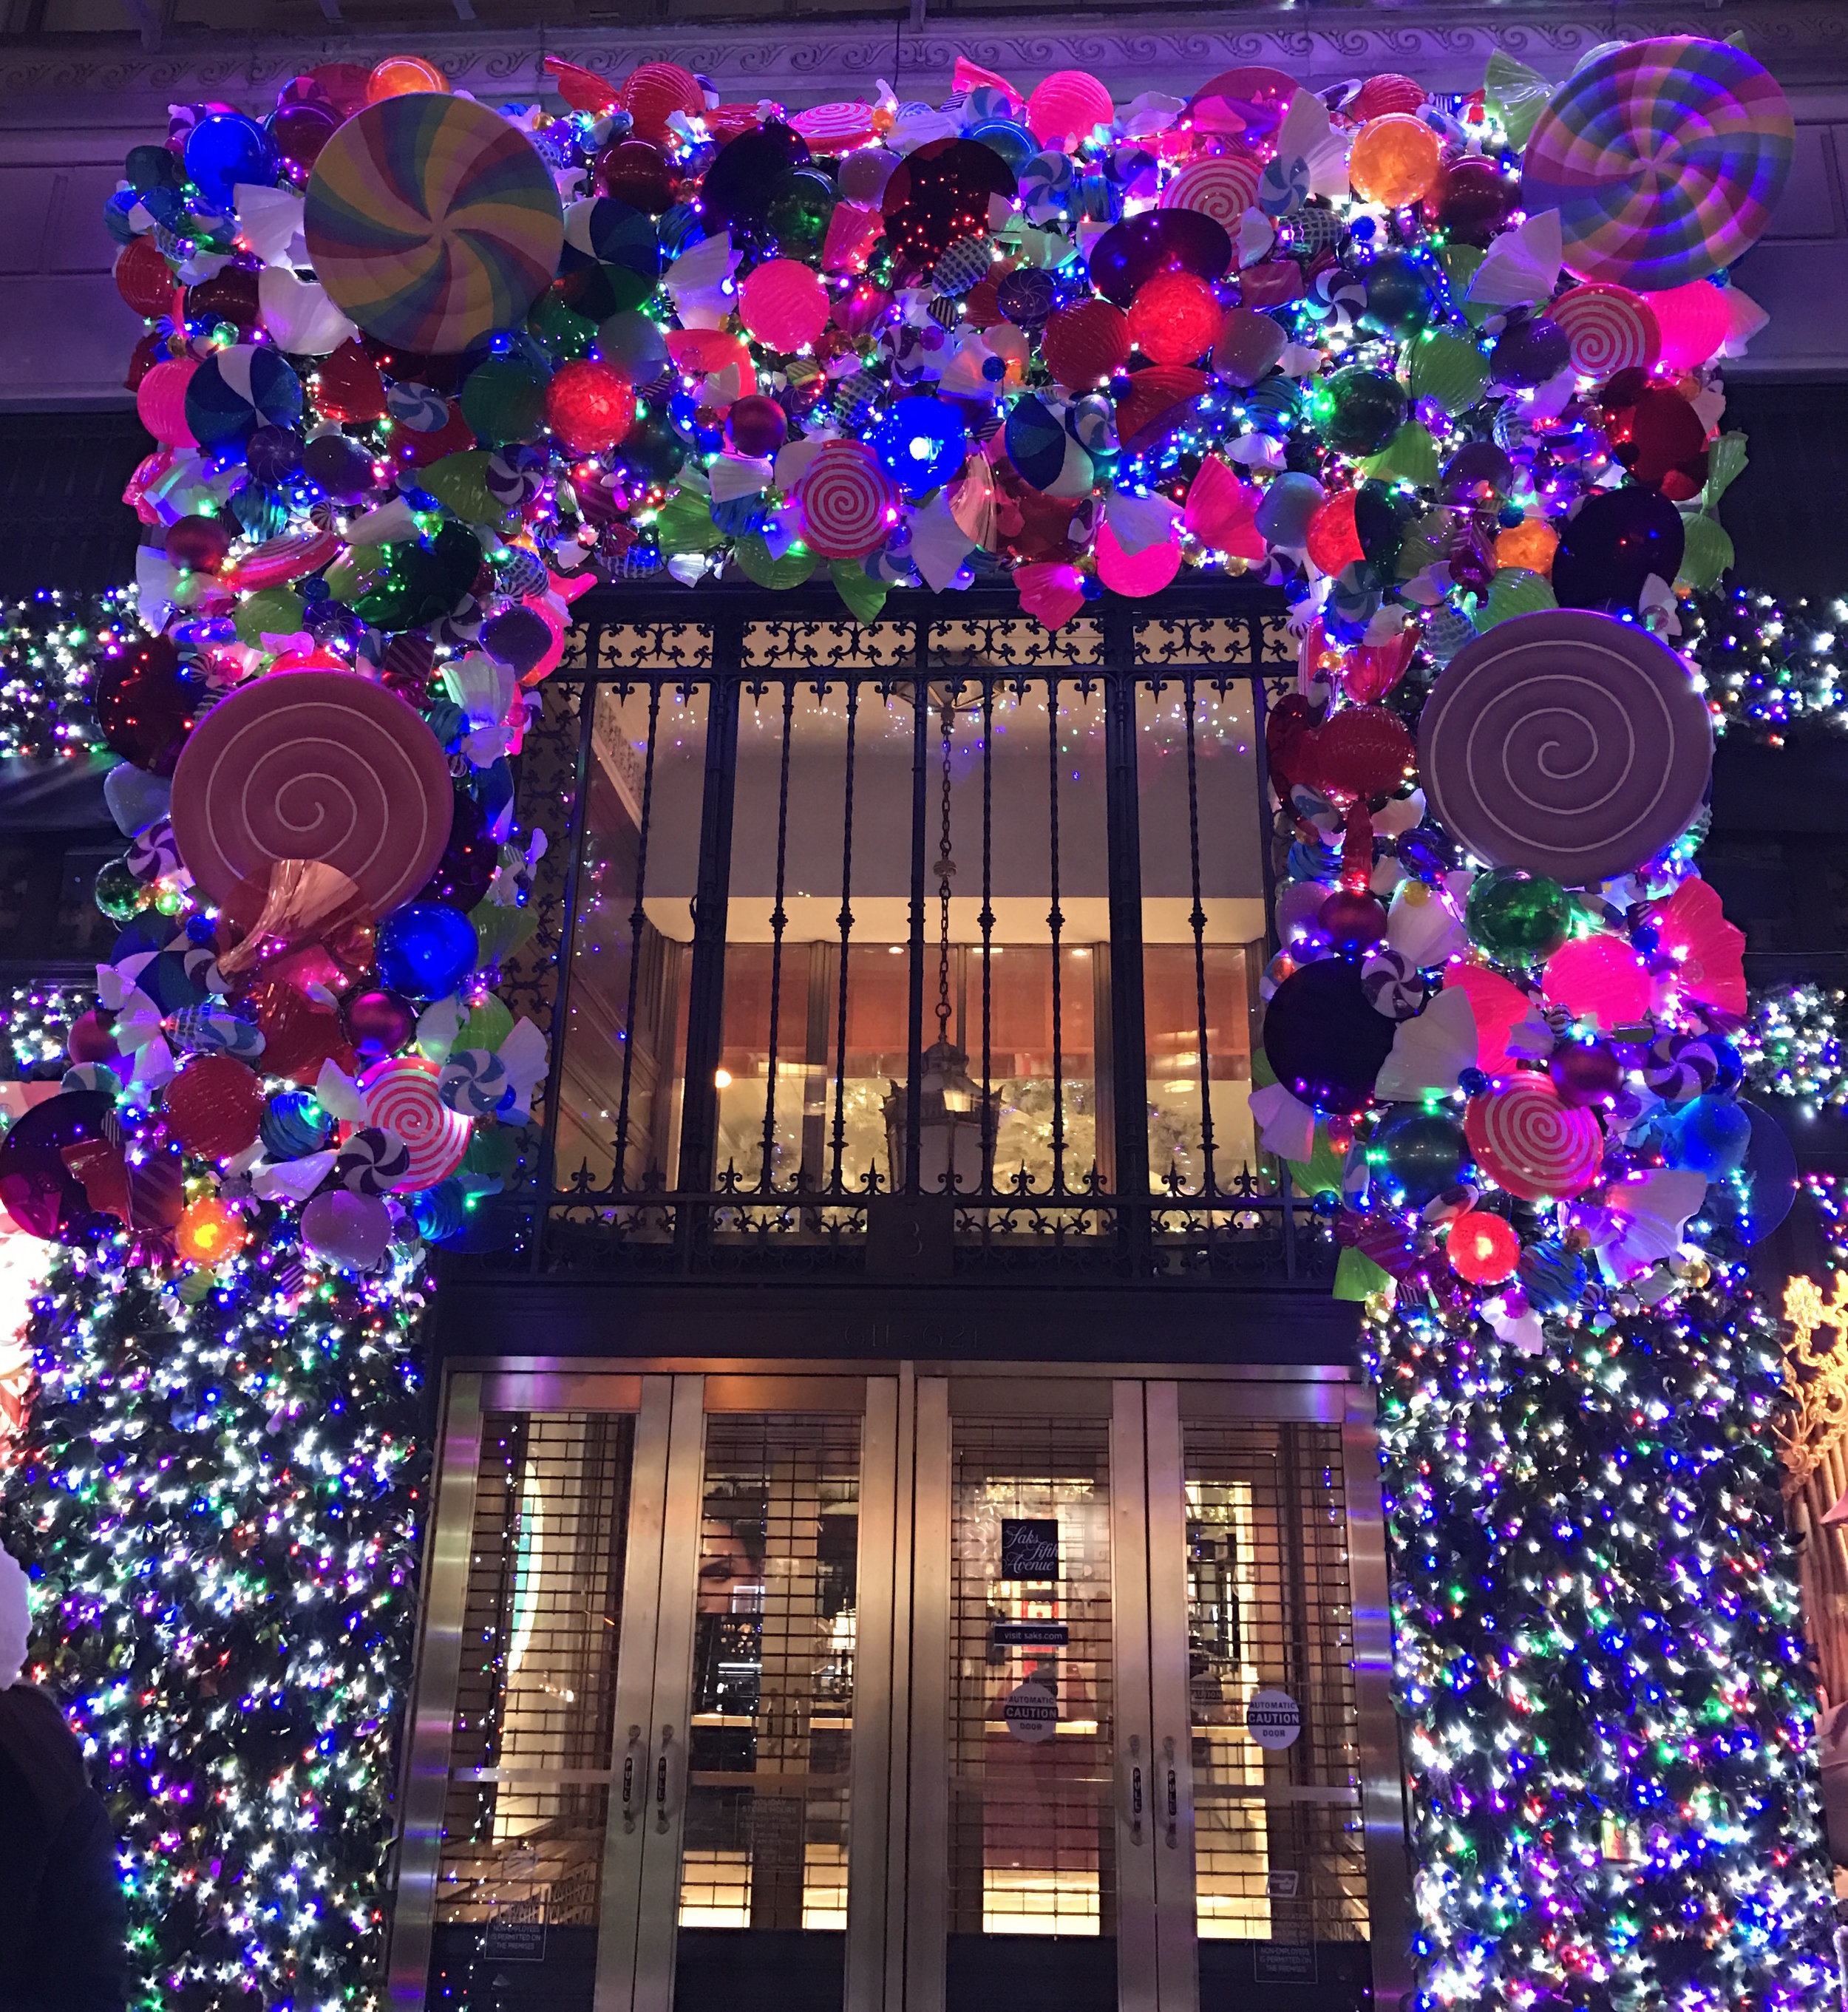 I was in NYC for work this week and was able to catch the shop light displays. Life goals: replicating this on my house some year...